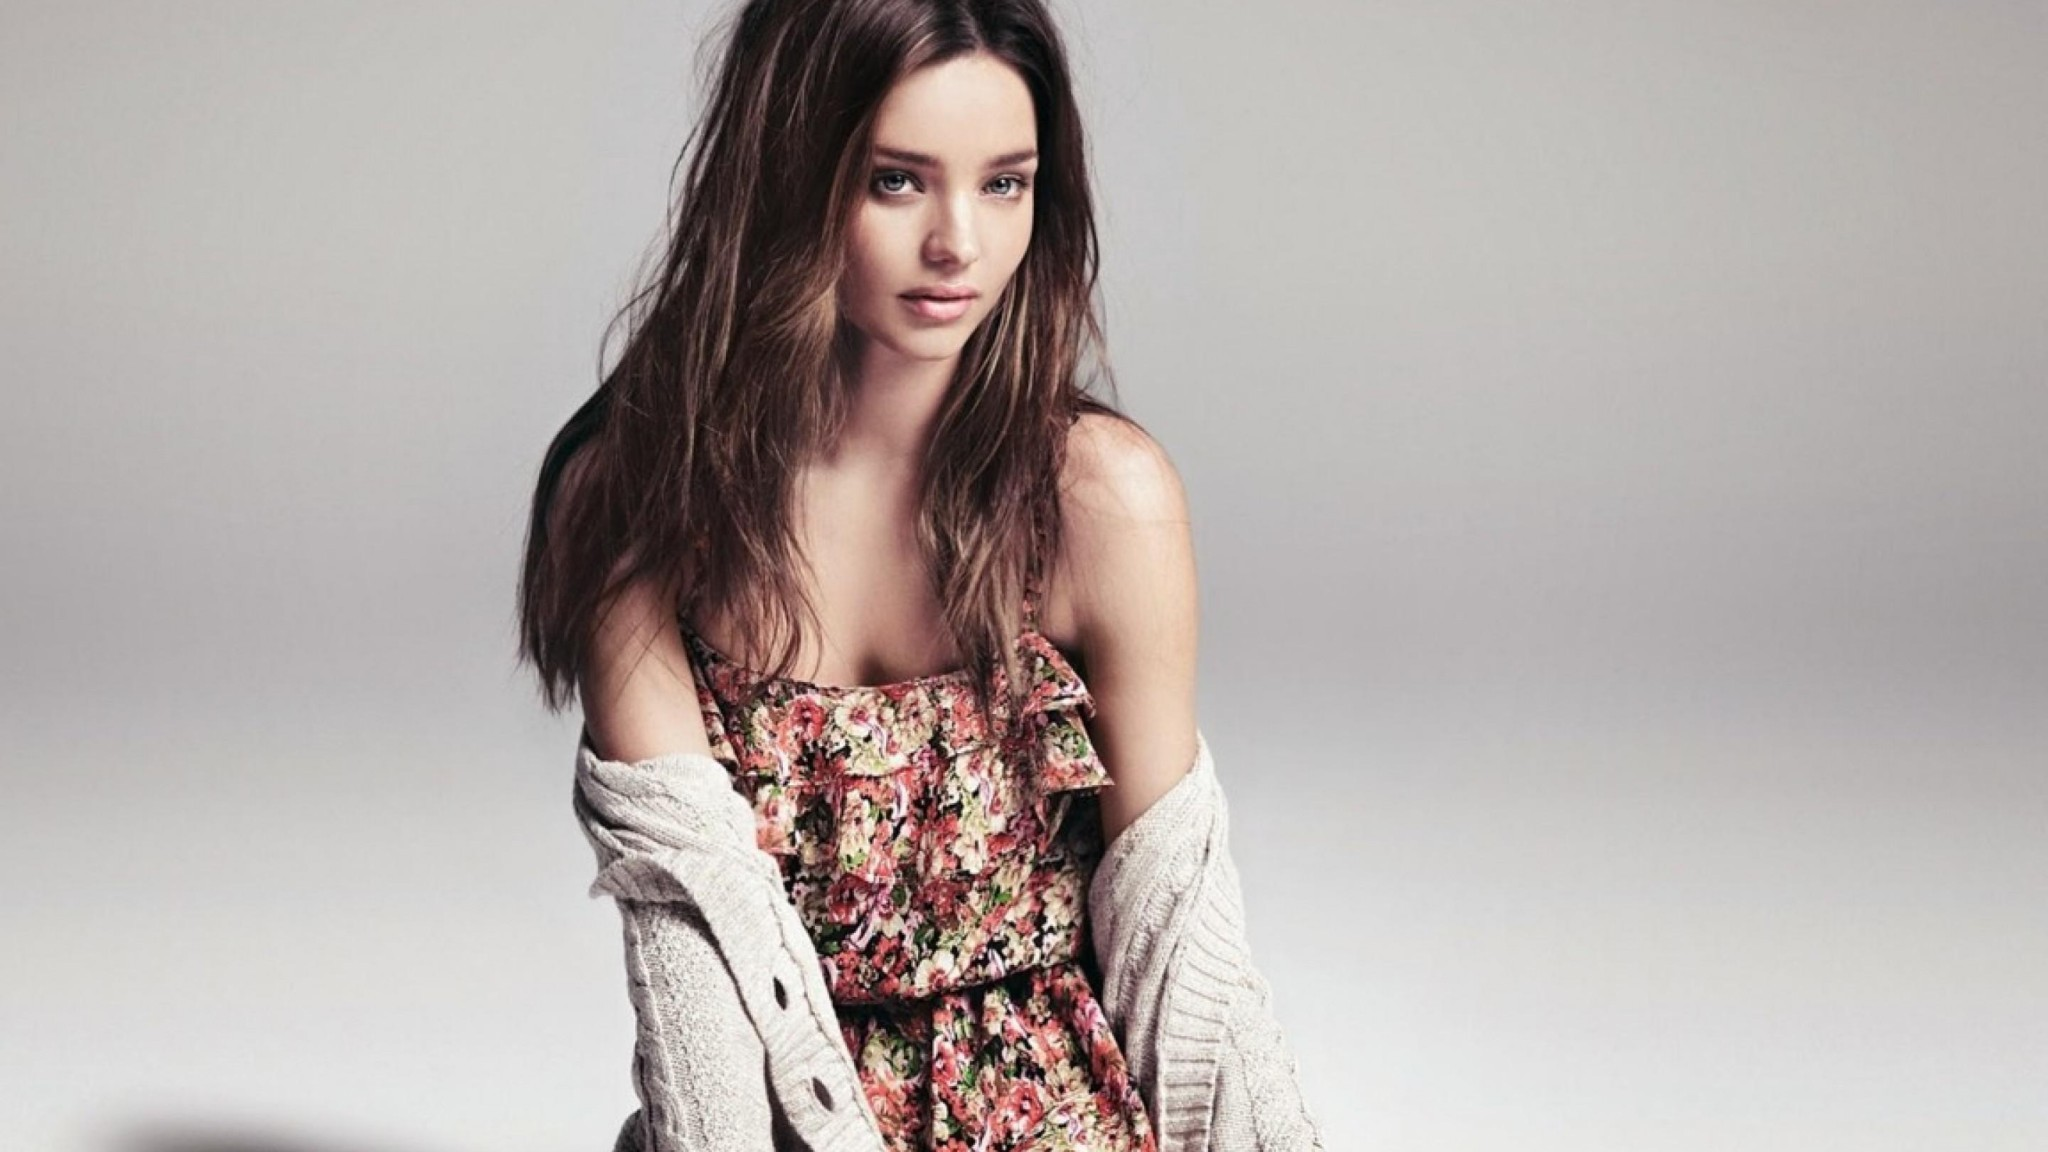 Pictures Of Miranda Kerr